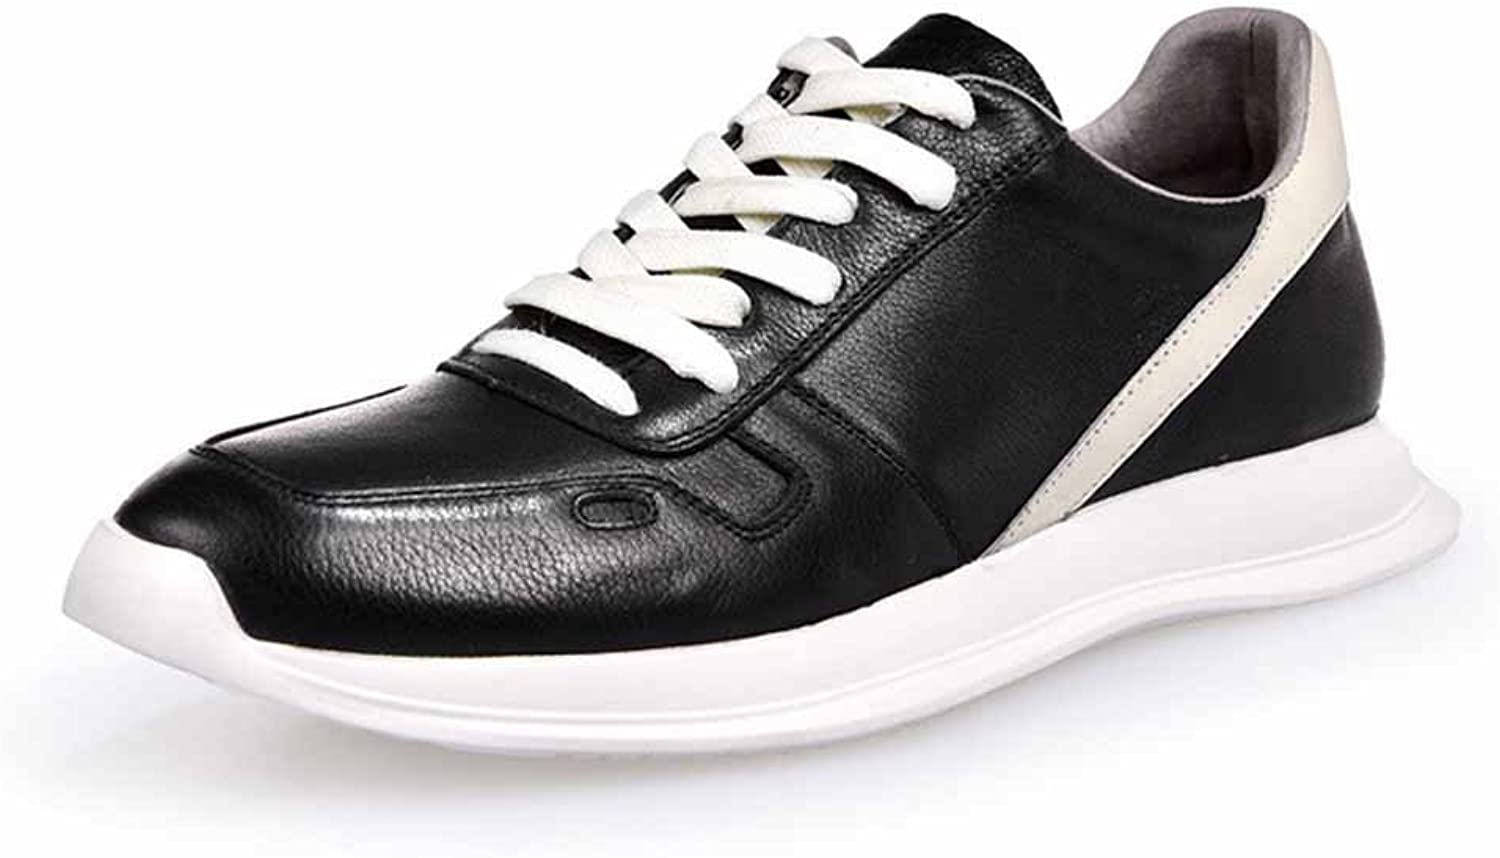 GLSHI Men shoes New White shoes Men's Leather Sports shoes shoes Korean Wild Casual shoes